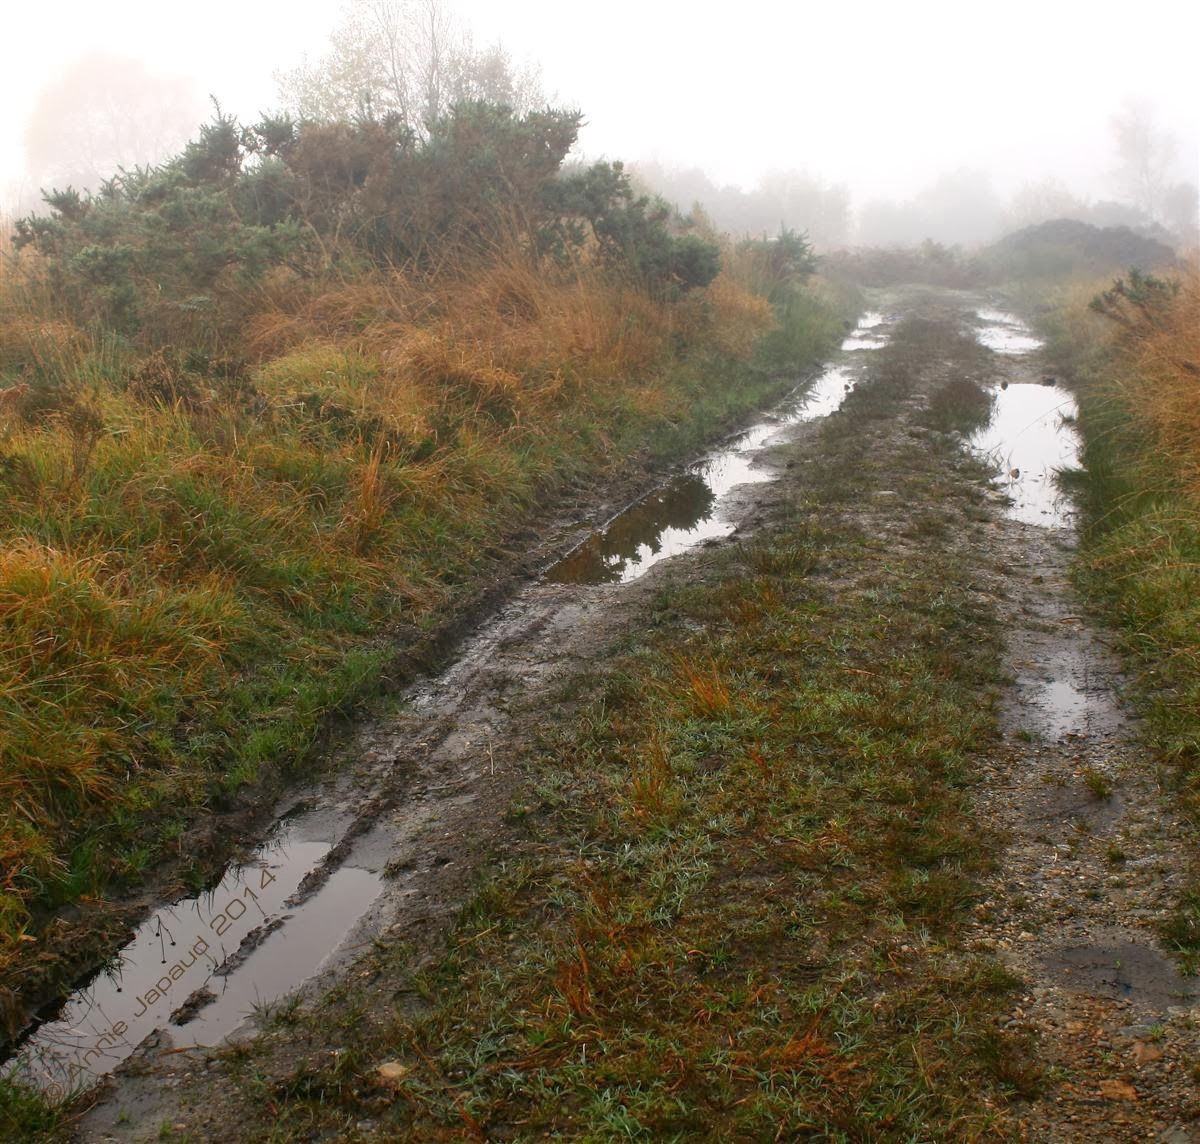 an image of a muddy road leading into the bogs